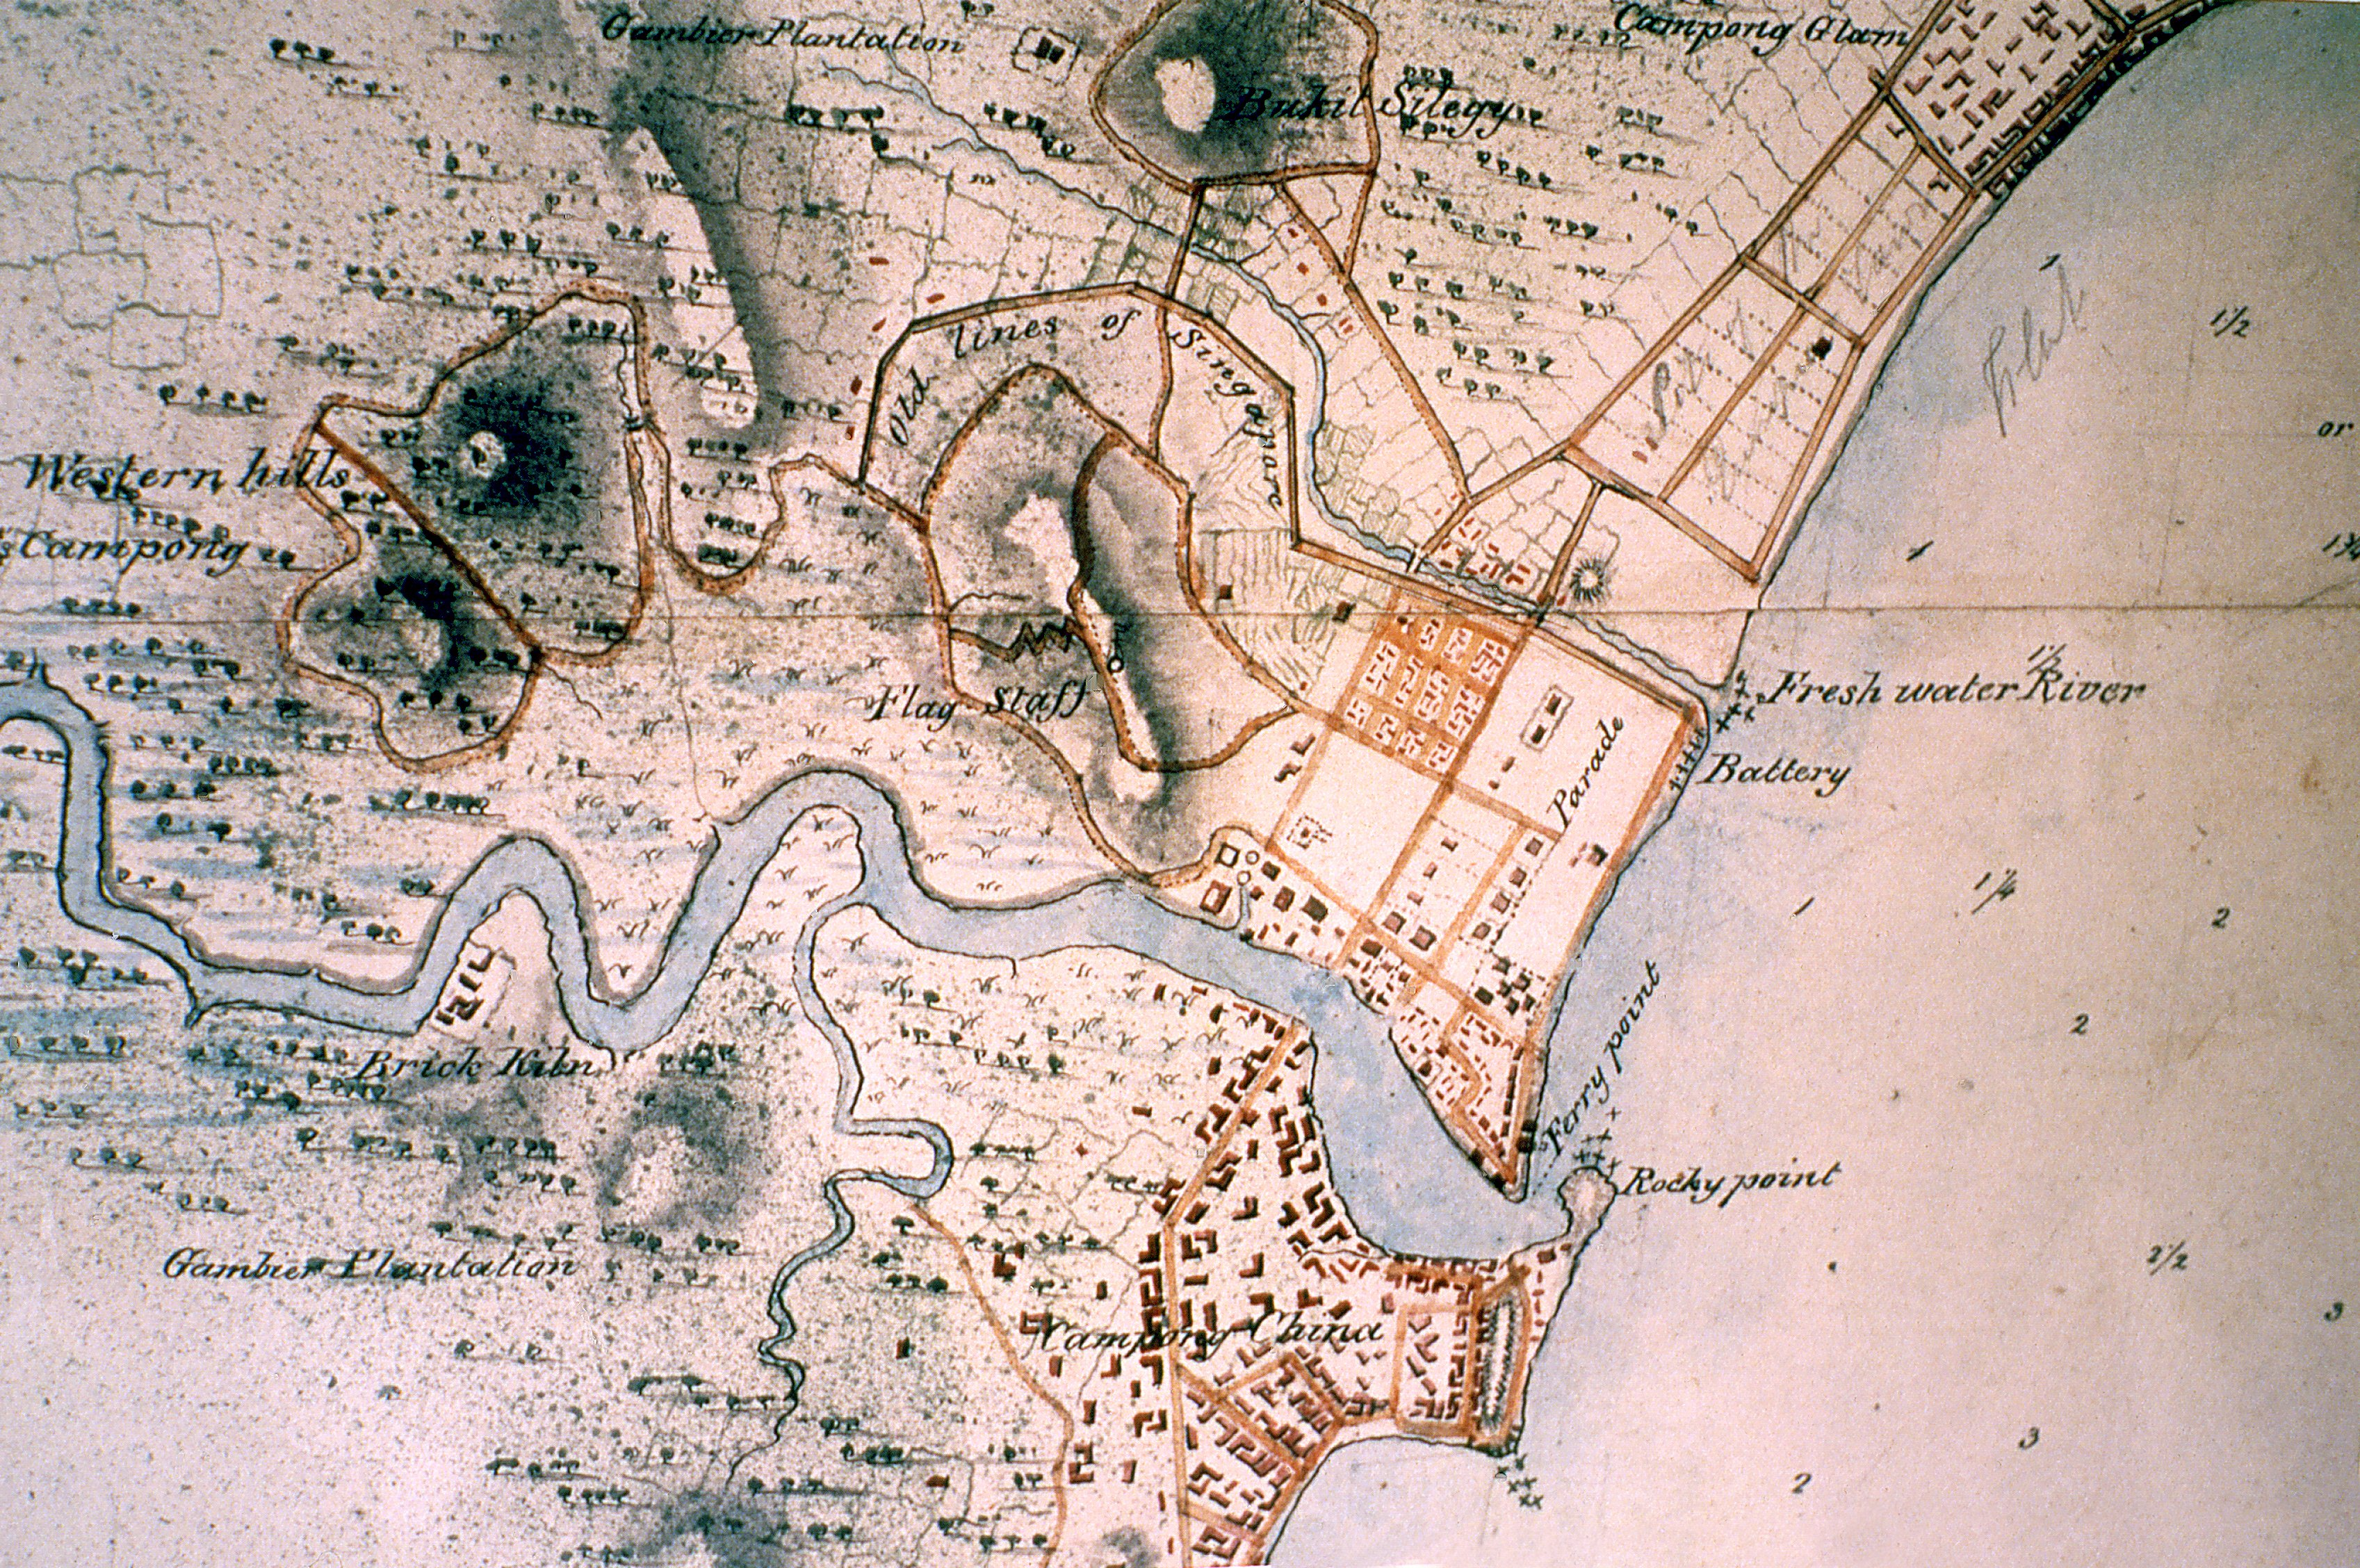 A survey map of Singapore showing the old lines of Singapore; the Singapore River; and Rocky Point, where the ancient sandstone slab which the Singapore Stone is a fragment of once stood. Fort Canning hill (centre) was home to its ancient and early colonial rulers. The map was drawn on June 18, 1825. From the India Office Records of the British Library, London.